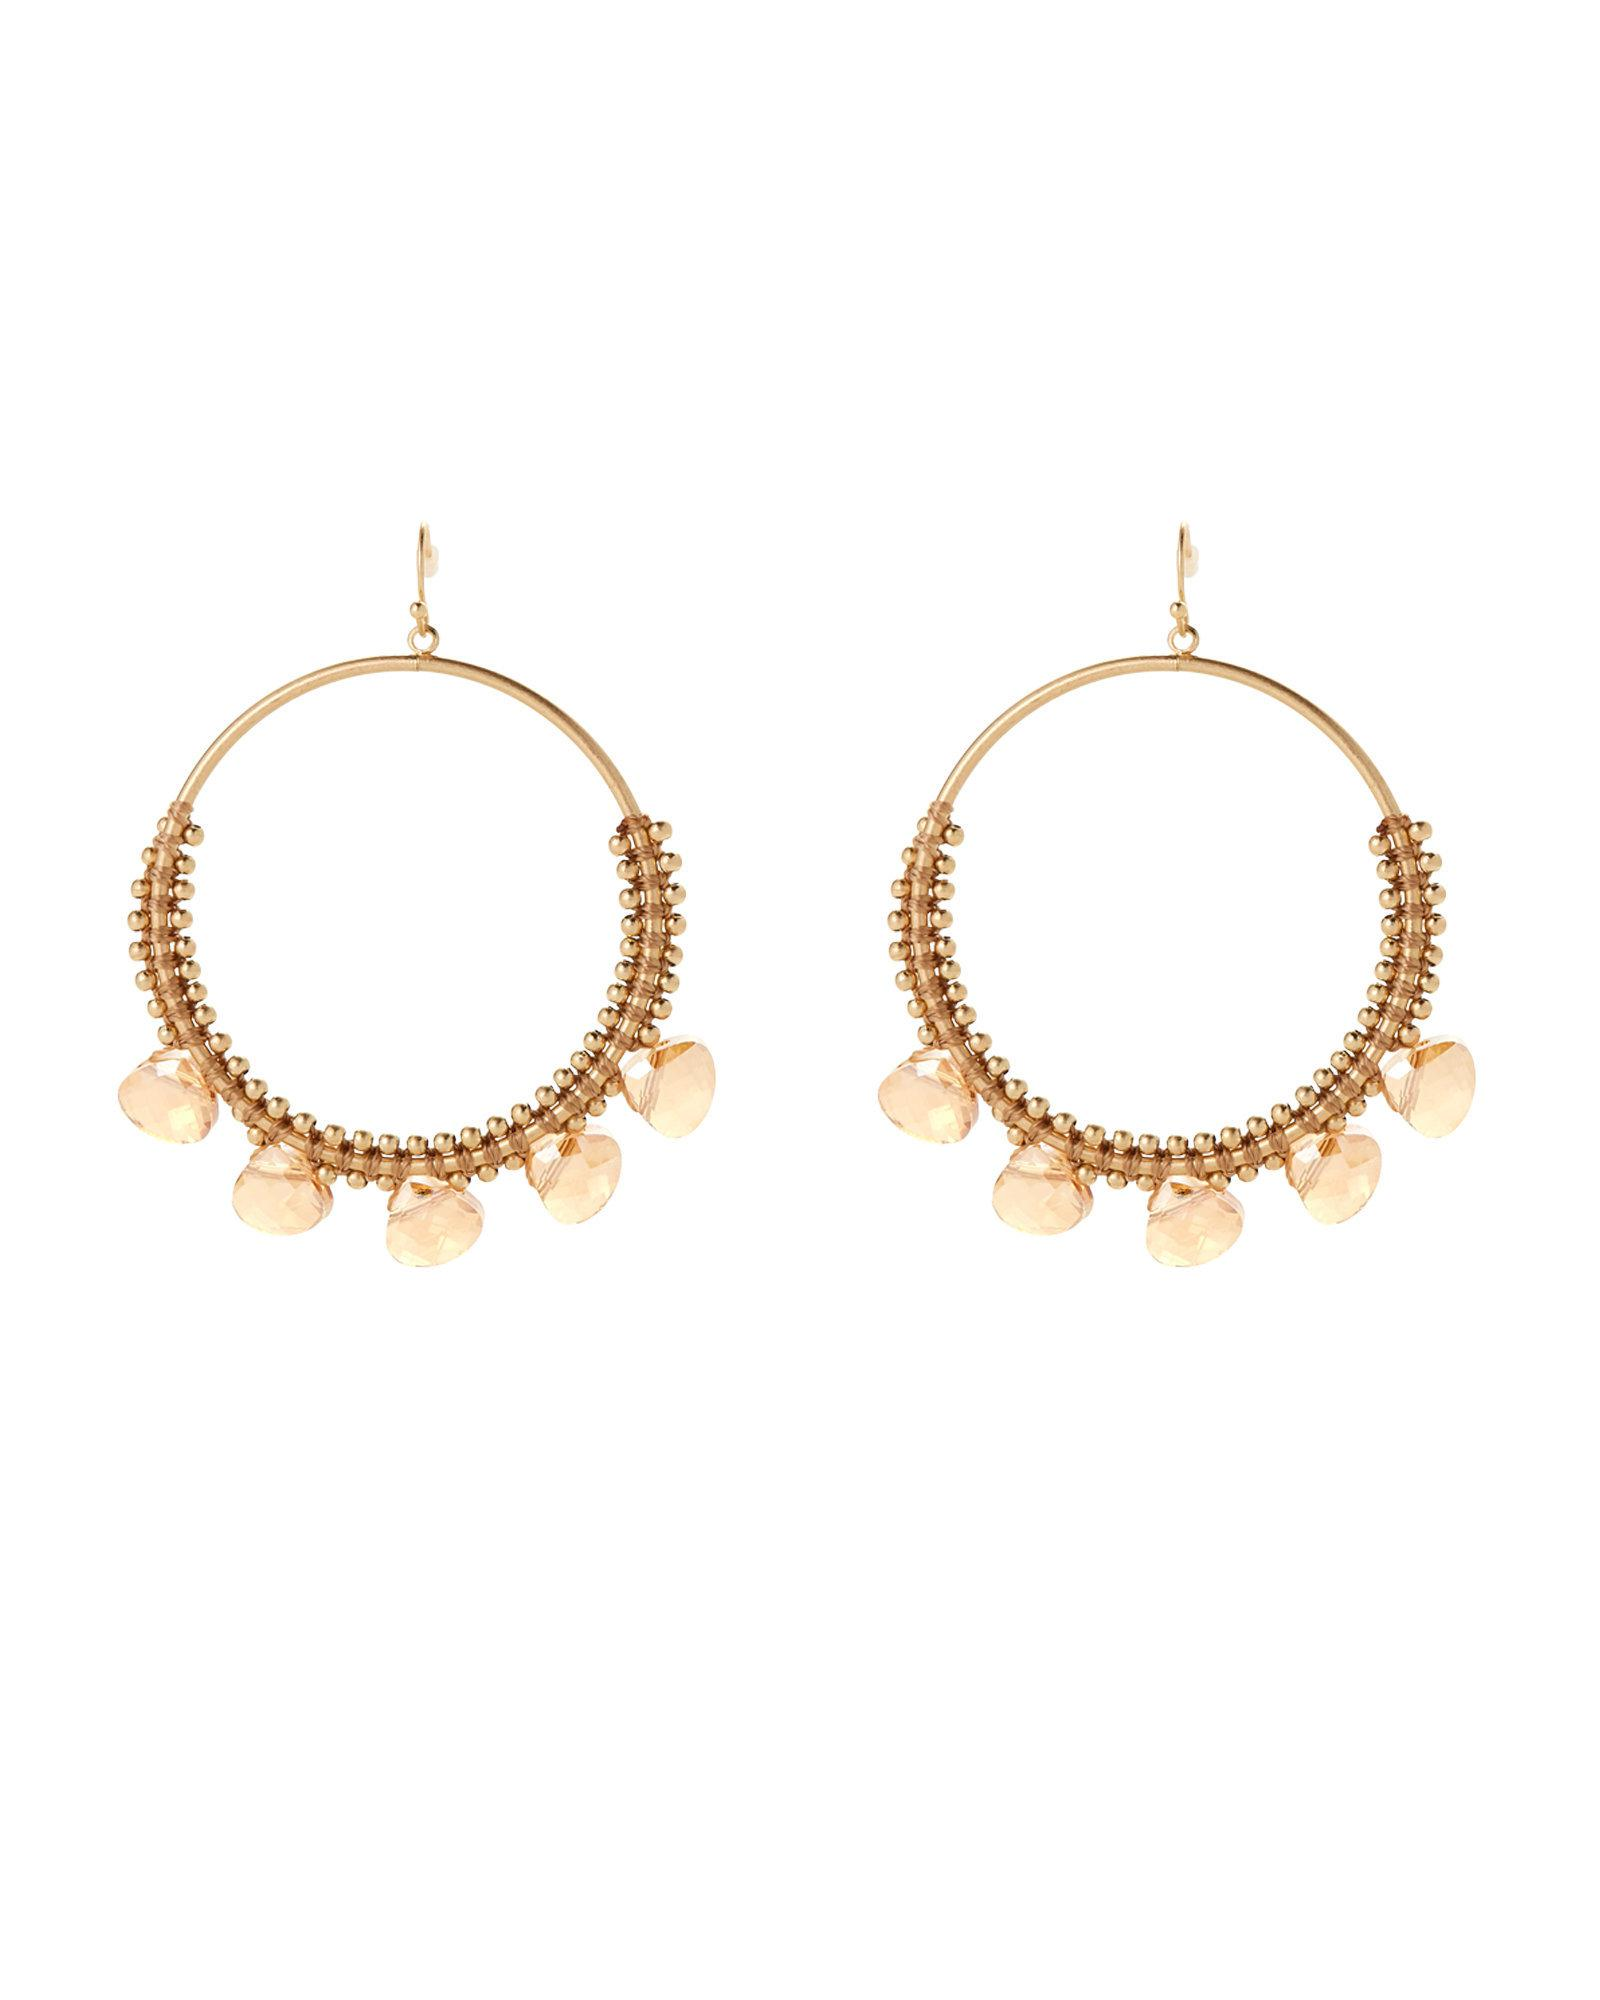 Panacea Shiny Hoop Earrings sCH2O6Kgv